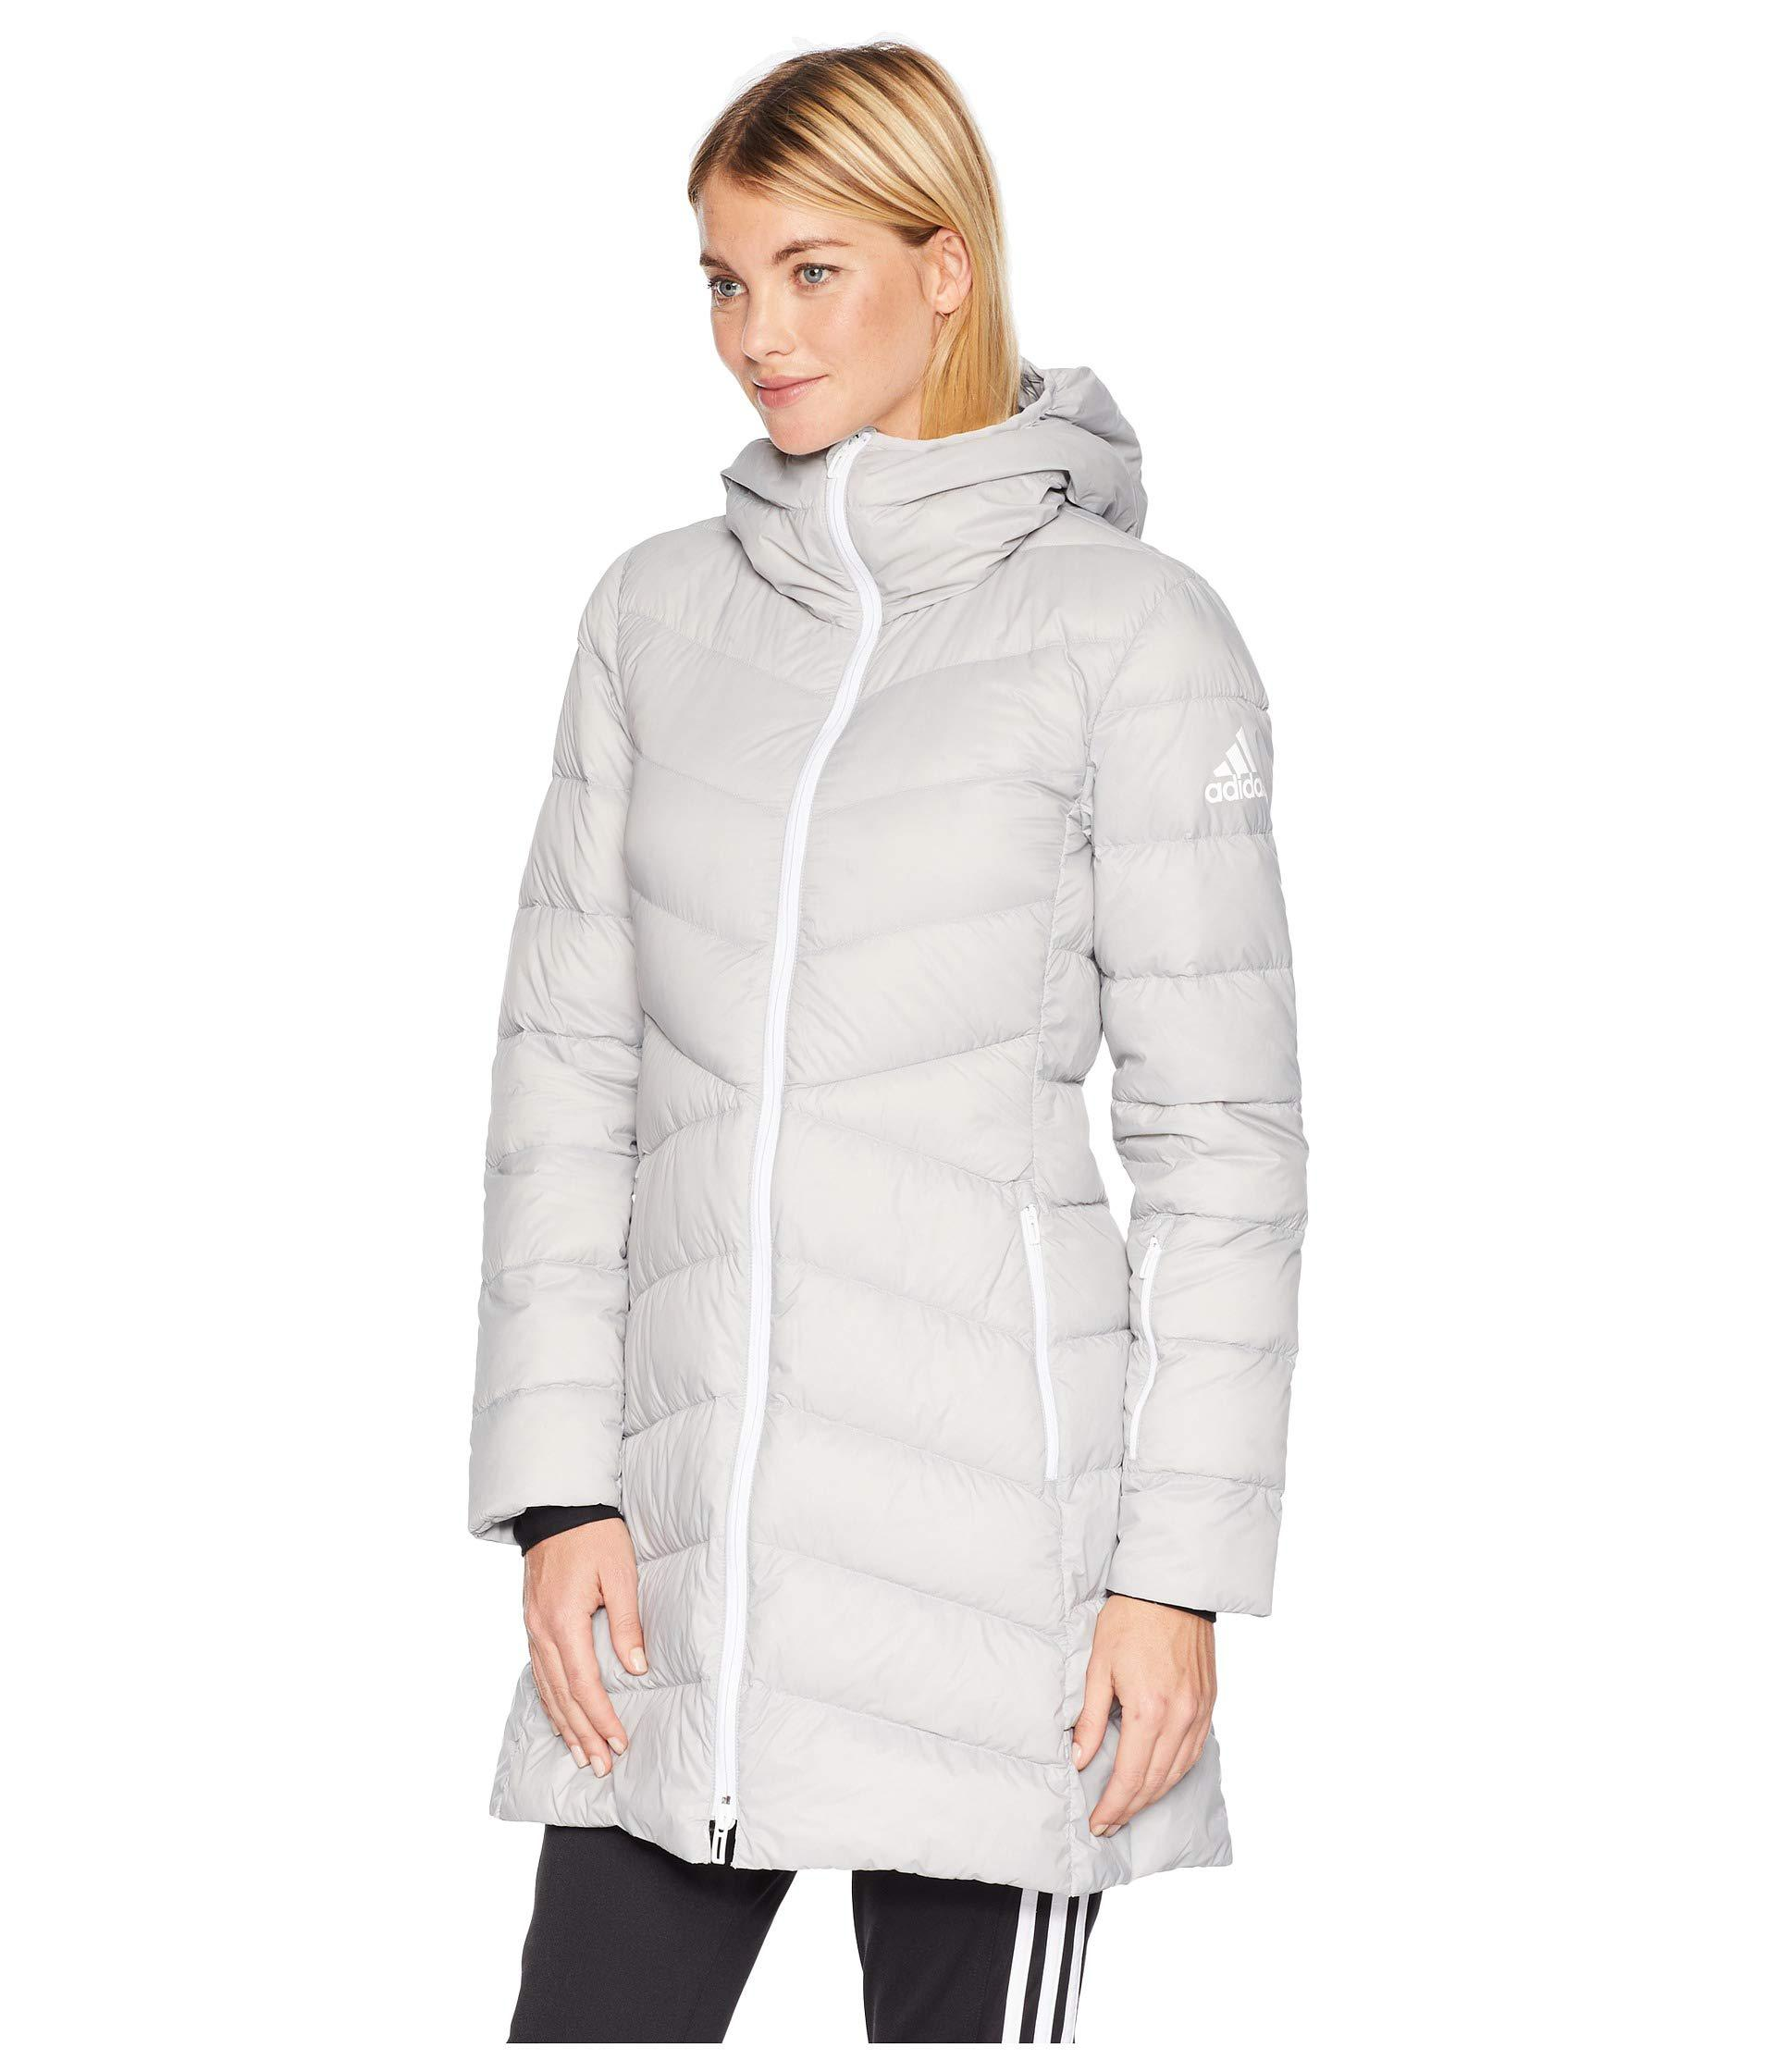 Lyst - Adidas Originals Climawarm(r) Hyperdry Nuvic Jacket (grey Two) Women s  Coat in Gray 2aebcaa471